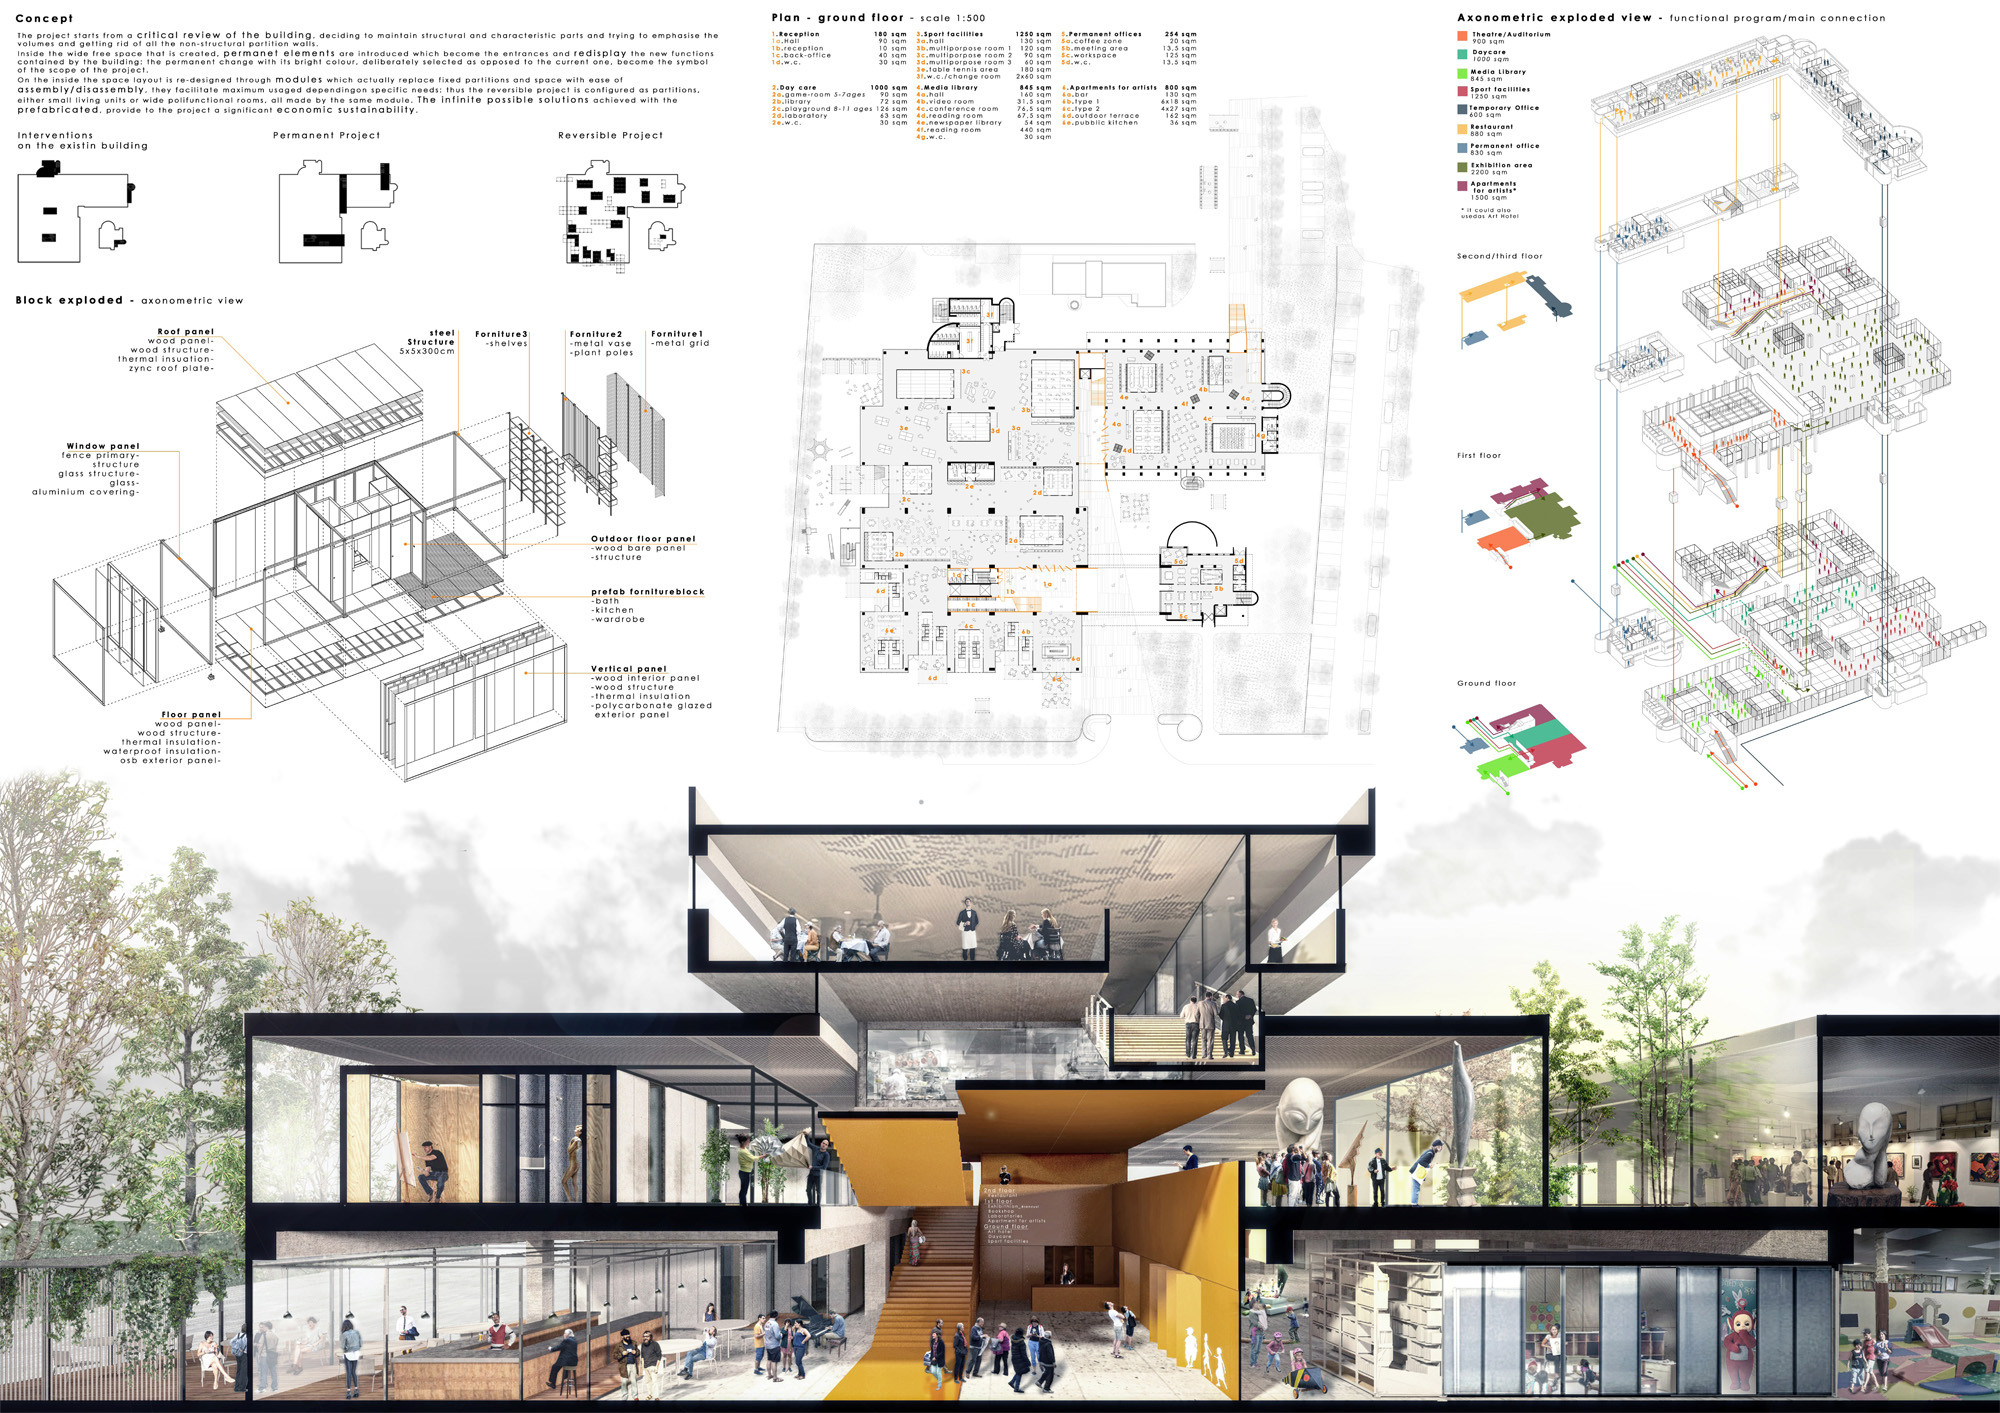 First Prize: Bruxelles (Francesco Quadrelli, Stefano Privitera). Image Courtesy of Young Architects Competitions